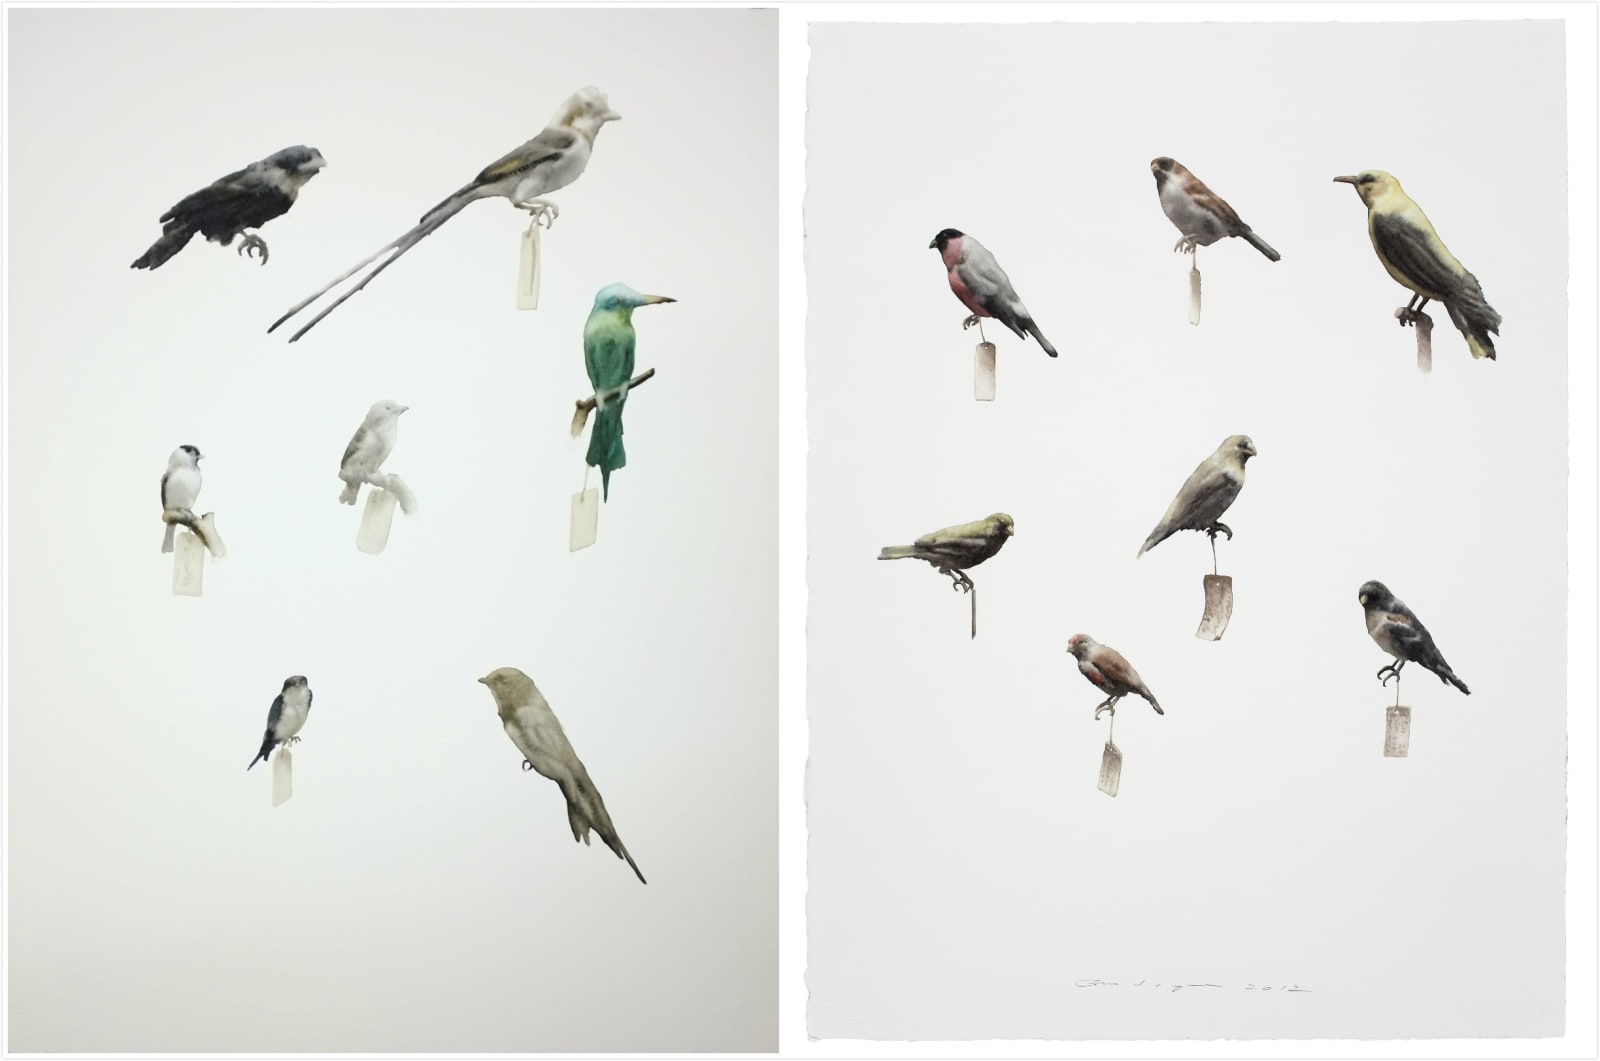 Guo Hongwei Painting is Collection - Bird 5, 2012-2013